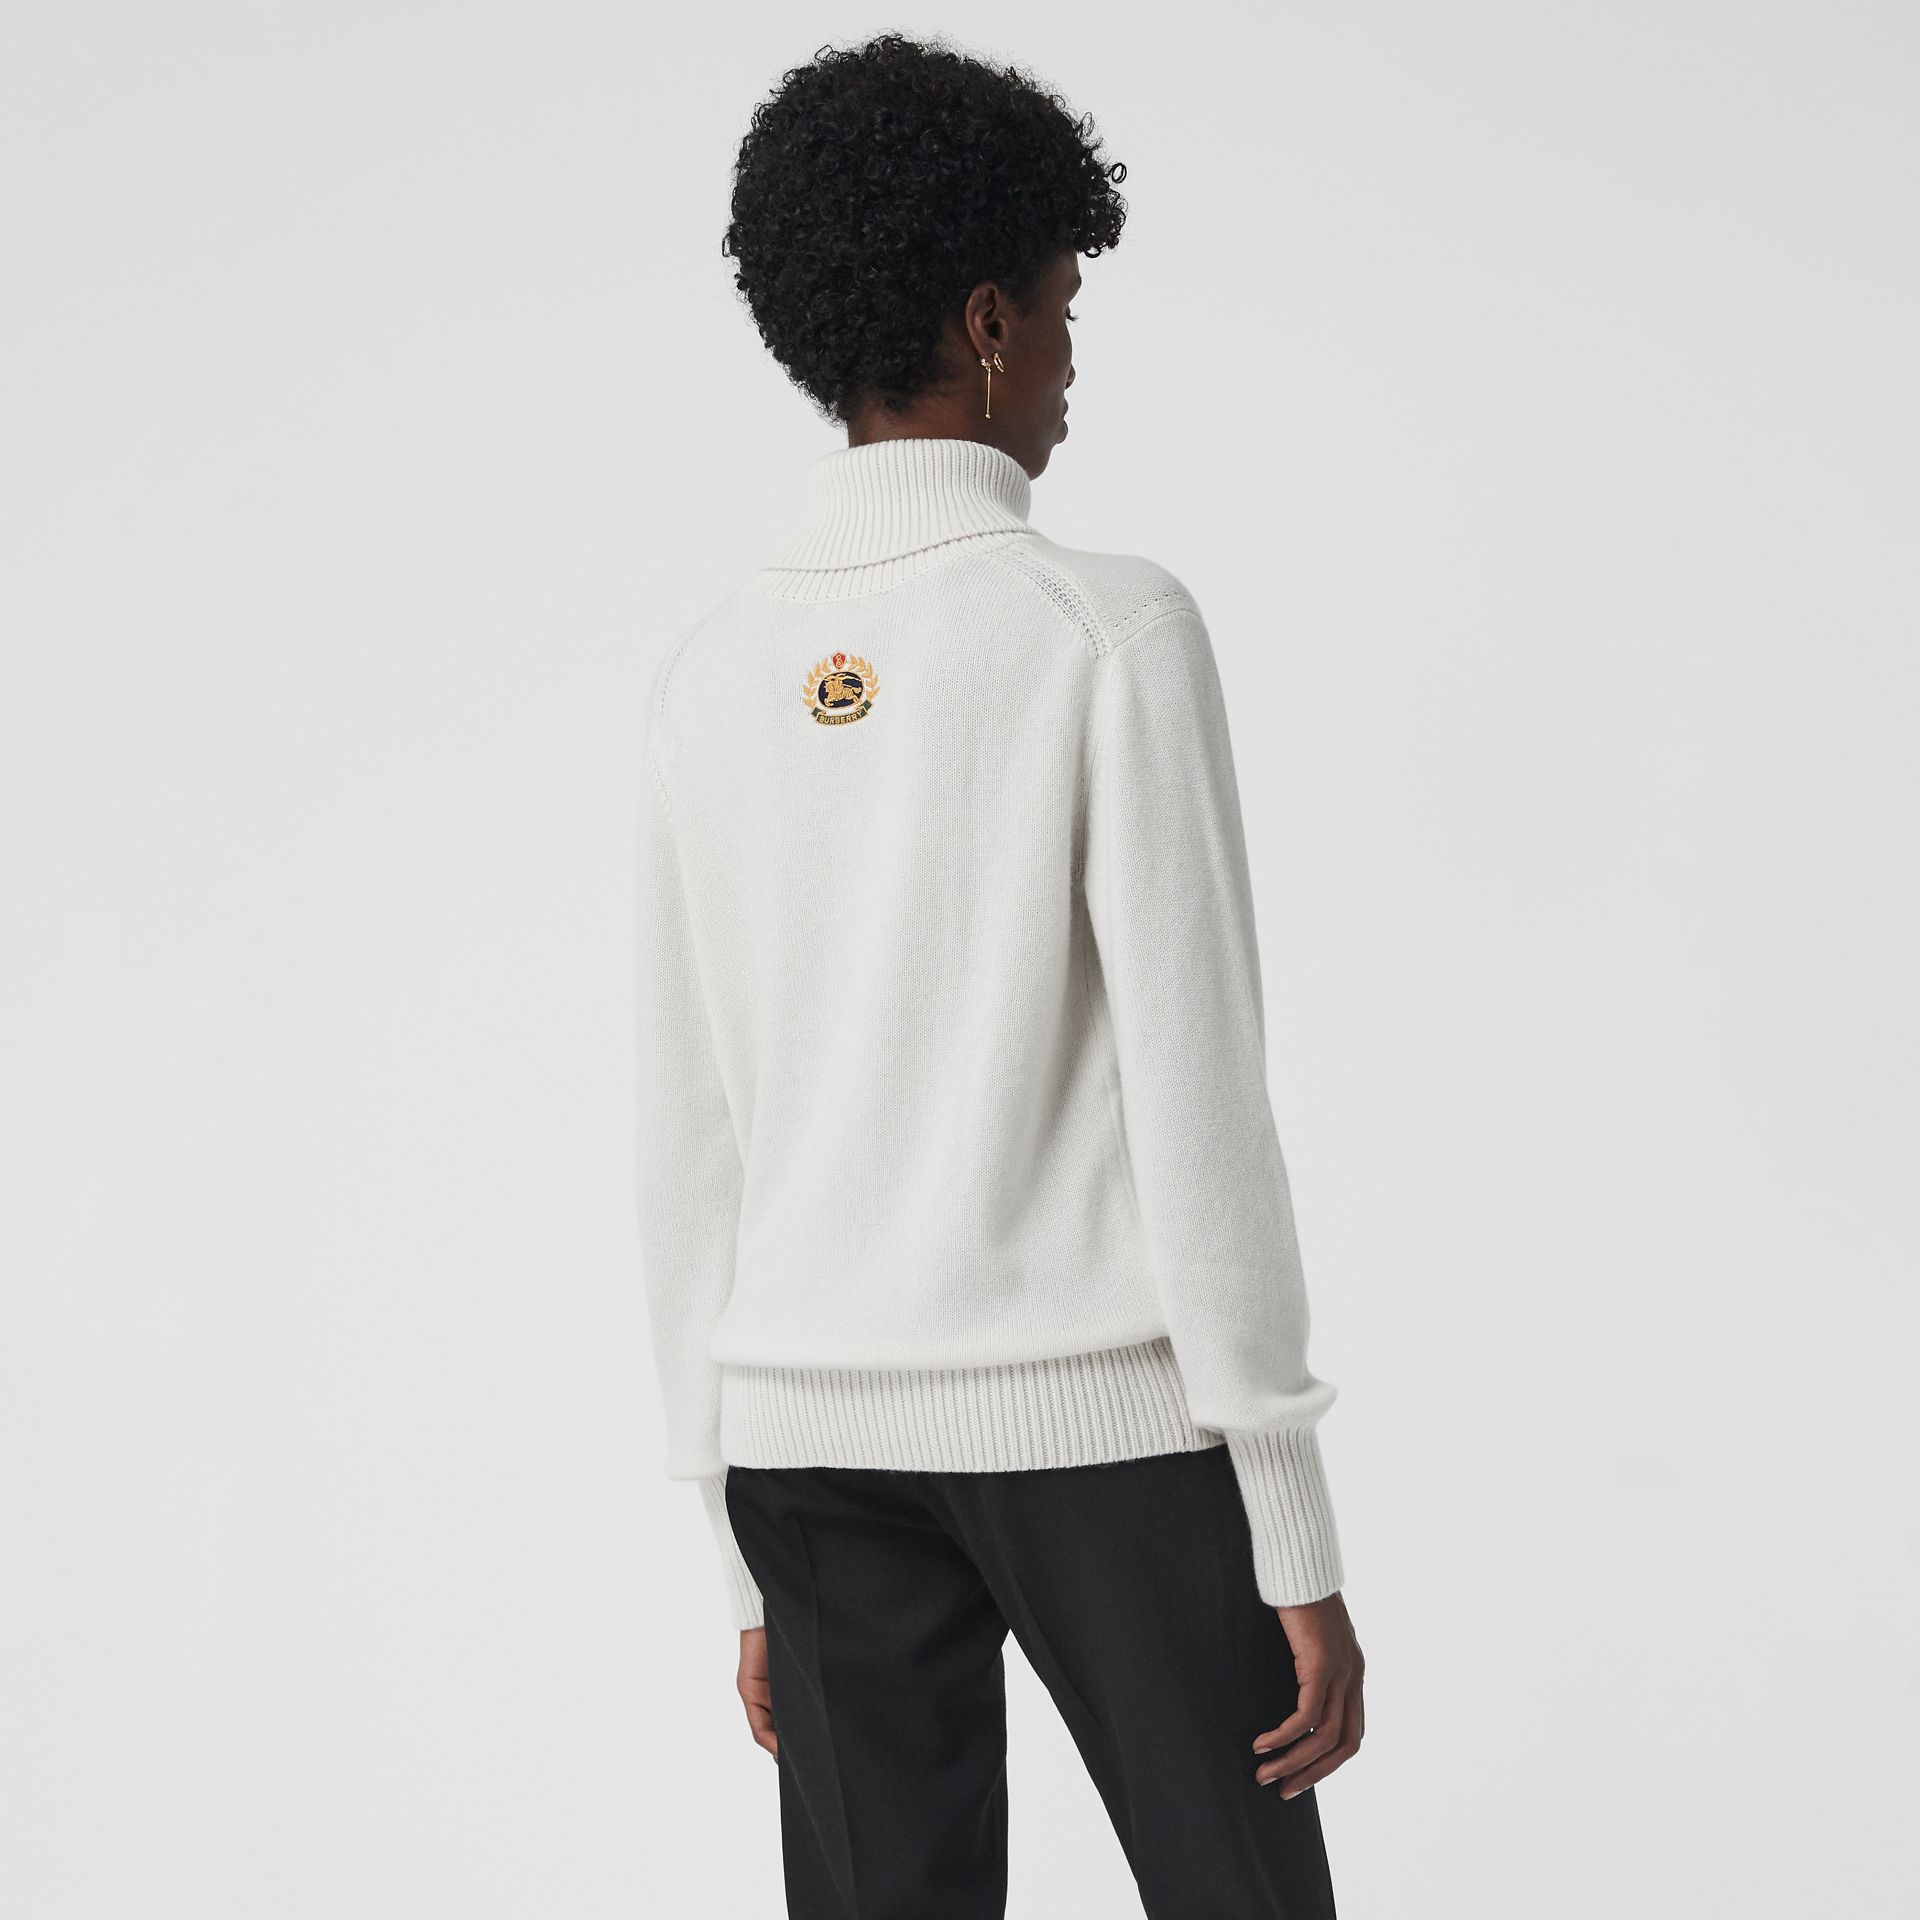 Embroidered Crest Cashmere Roll-neck Sweater in White - Women | Burberry - gallery image 2